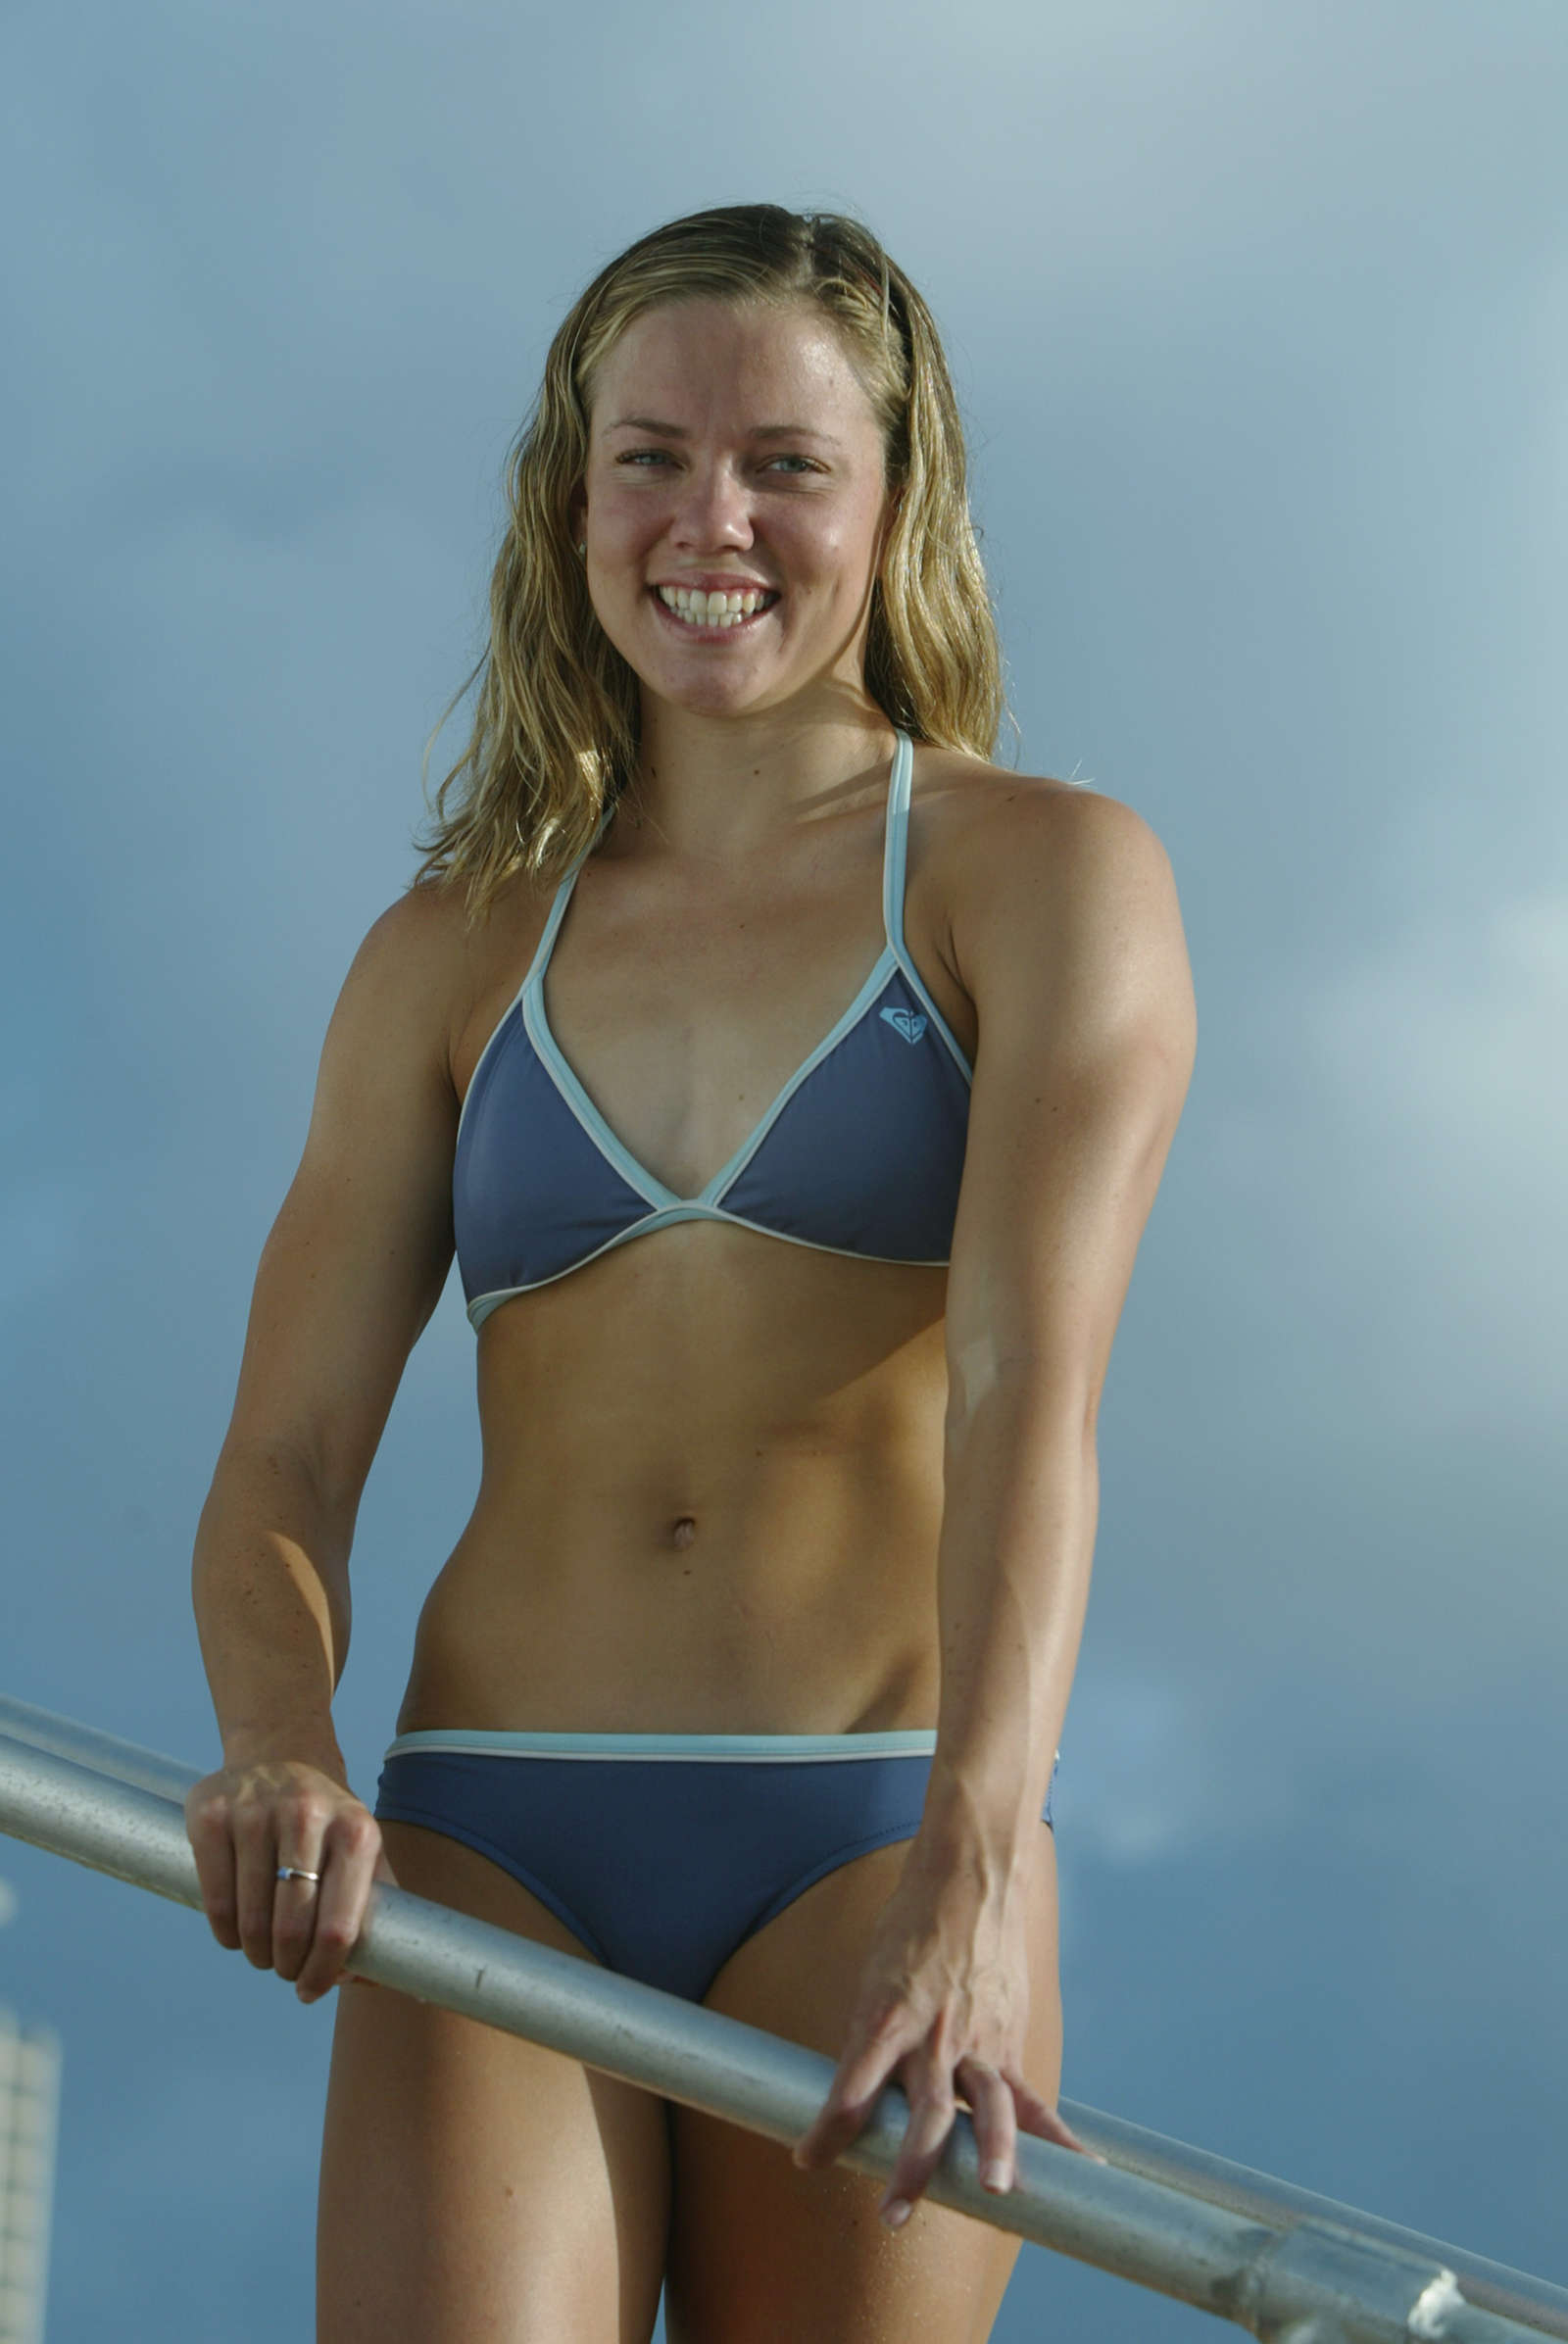 Natalie coughlin nude photos